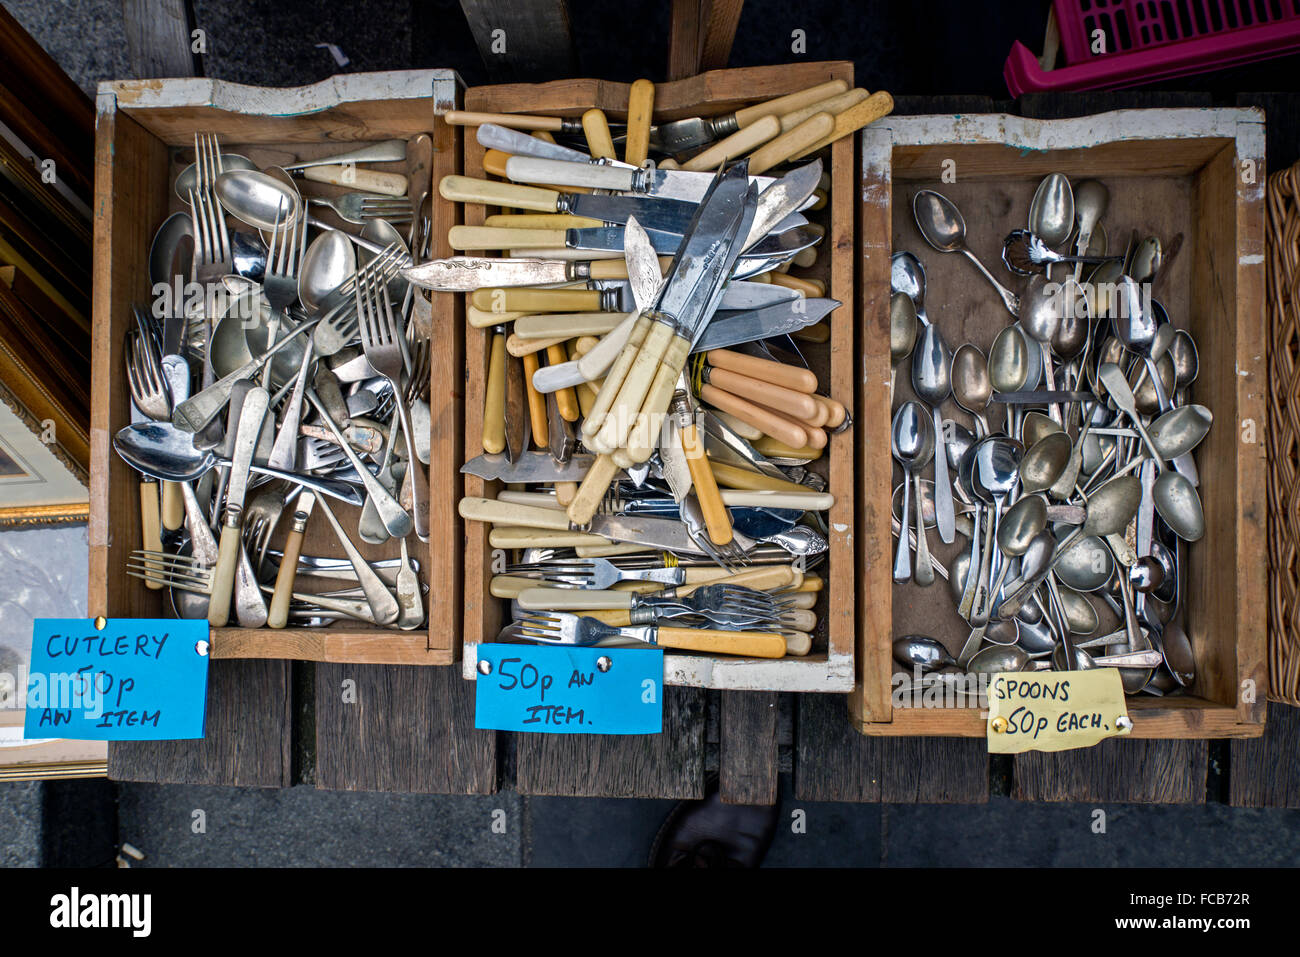 Boxes of cheap, secondhand cutlery for sale on a market stall in Edinburgh's Grassmarket. - Stock Image